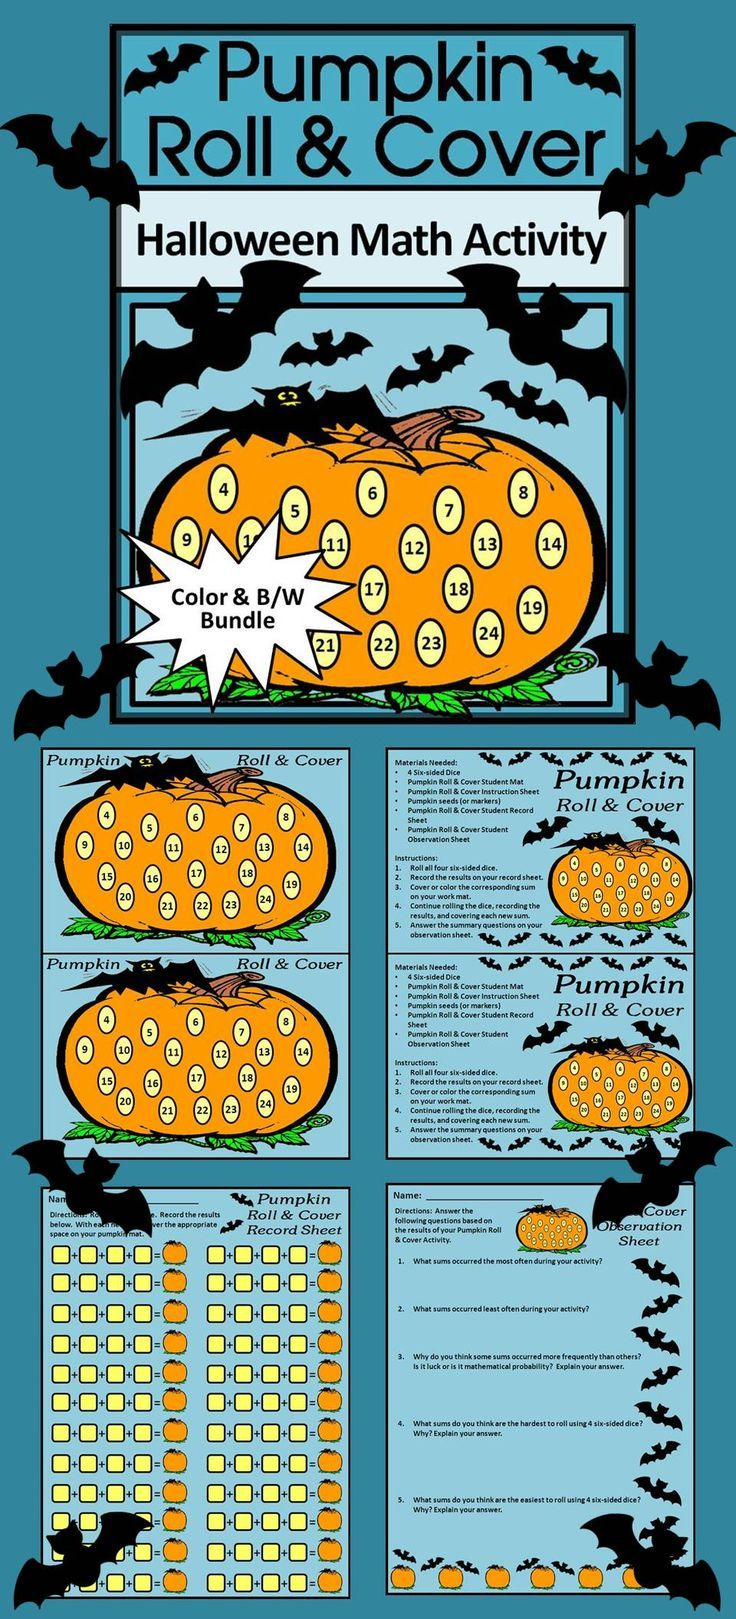 Pumpkin Activities: Pumpkin Roll & Cover Halloween Math Activity ...